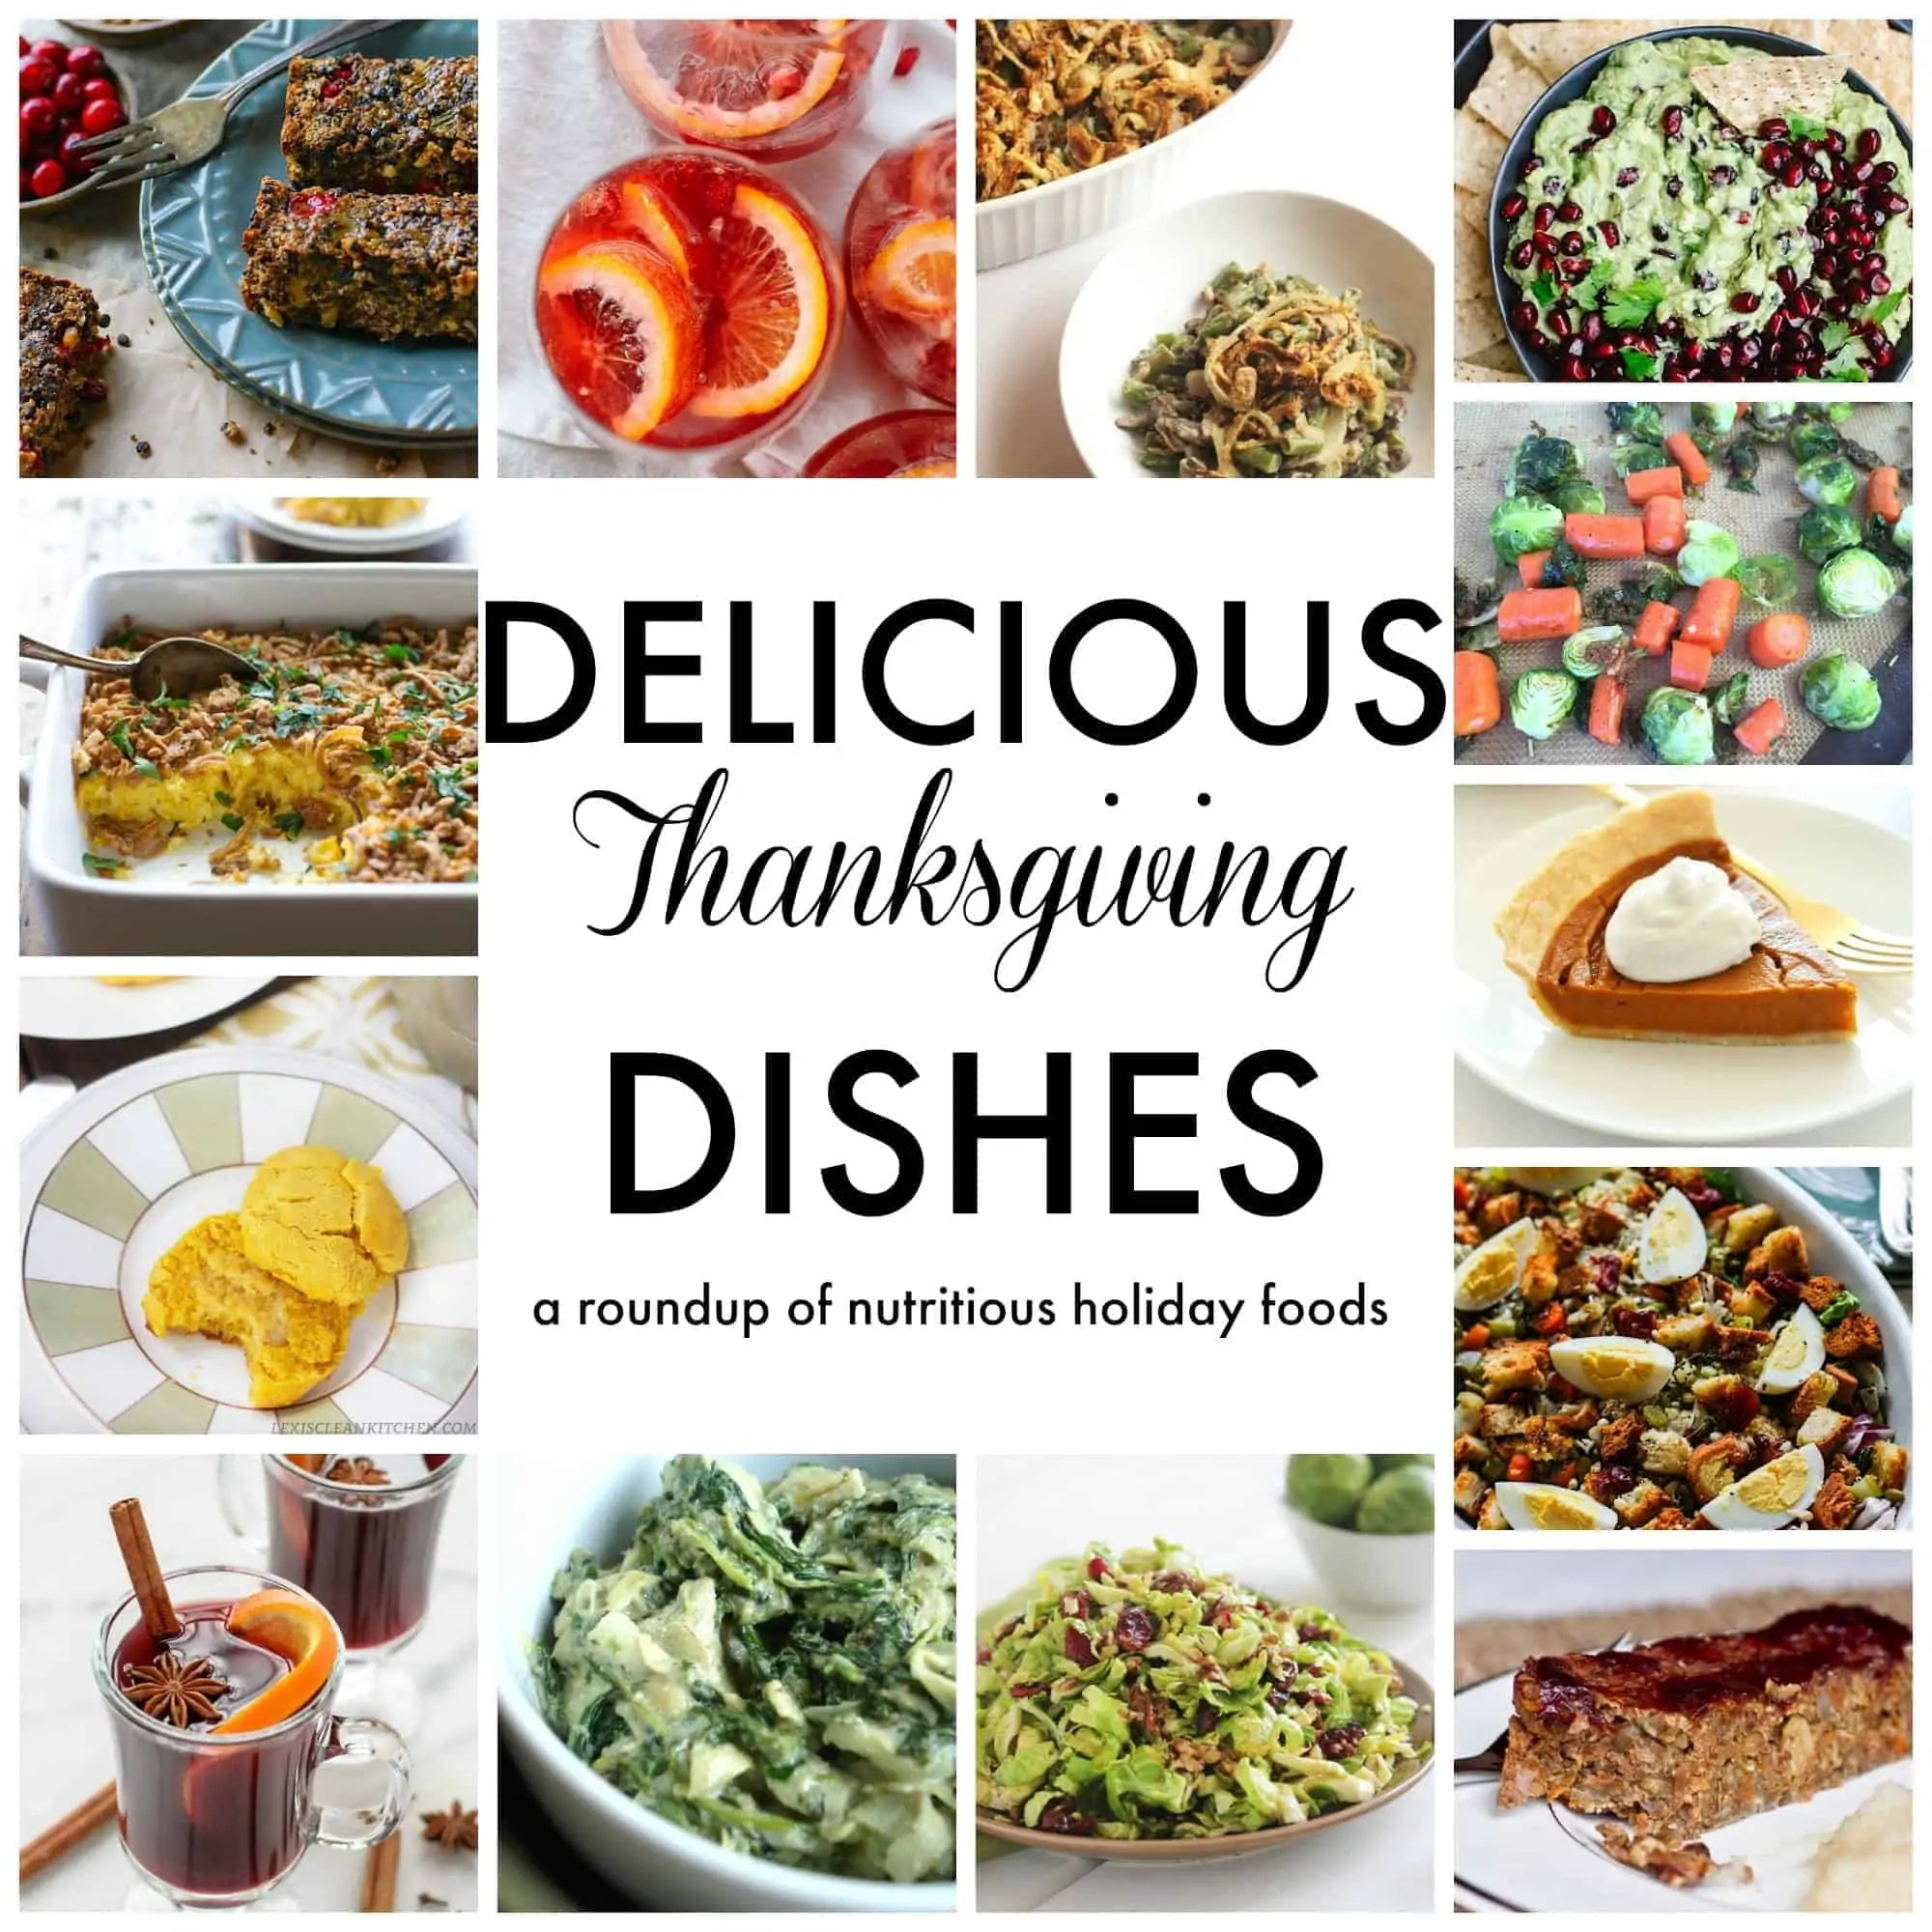 NUTRITIOUS Thanksgiving Dishes from Treble in the Kitchen